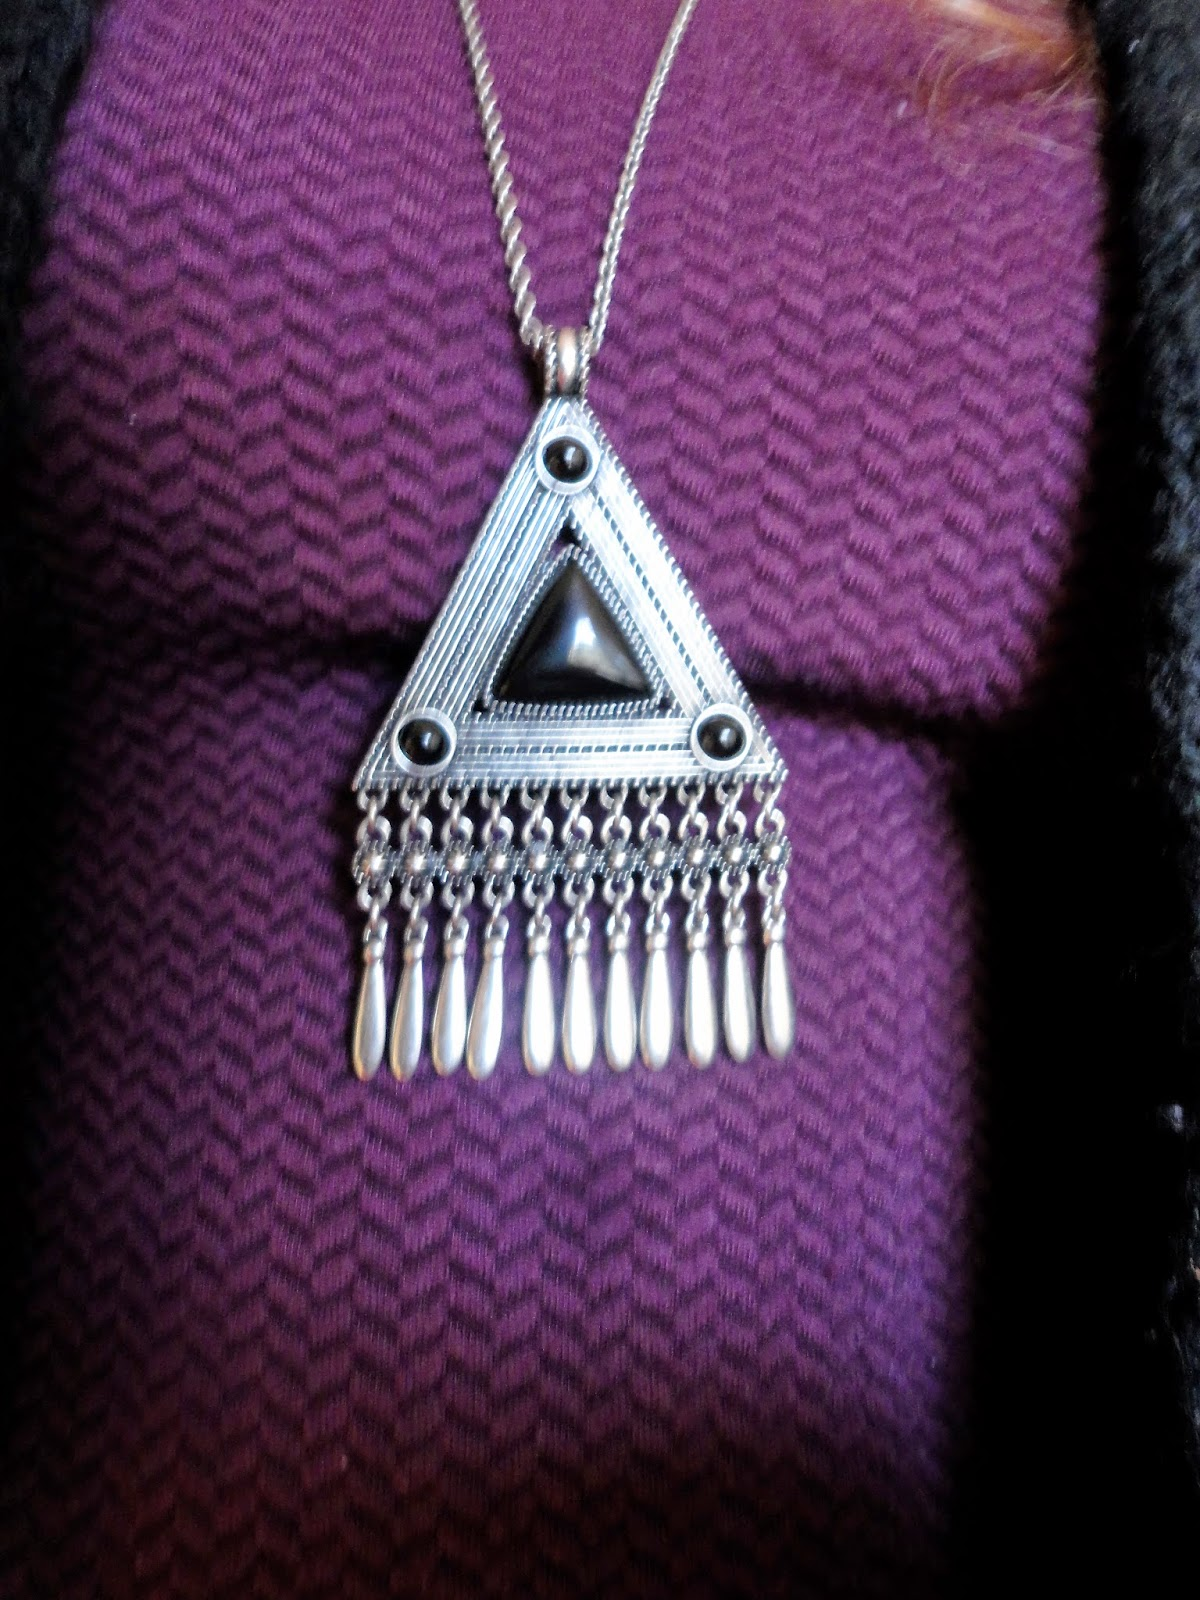 black and silver triangular pendant on purple dress